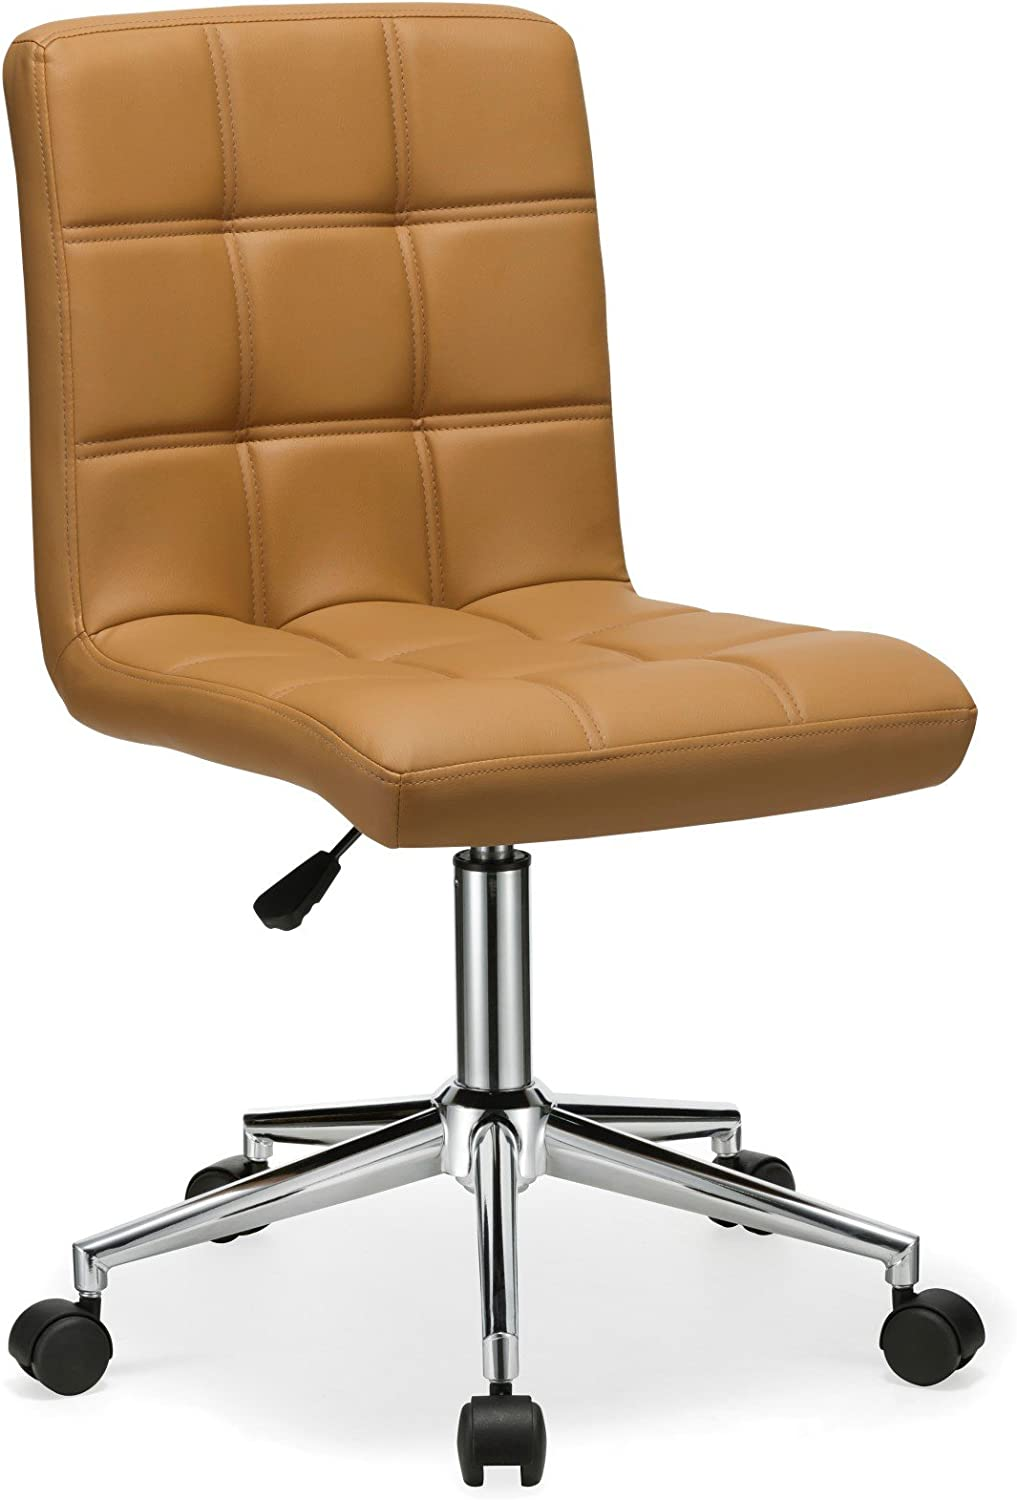 Porthos Home Finch Office Chair Brown